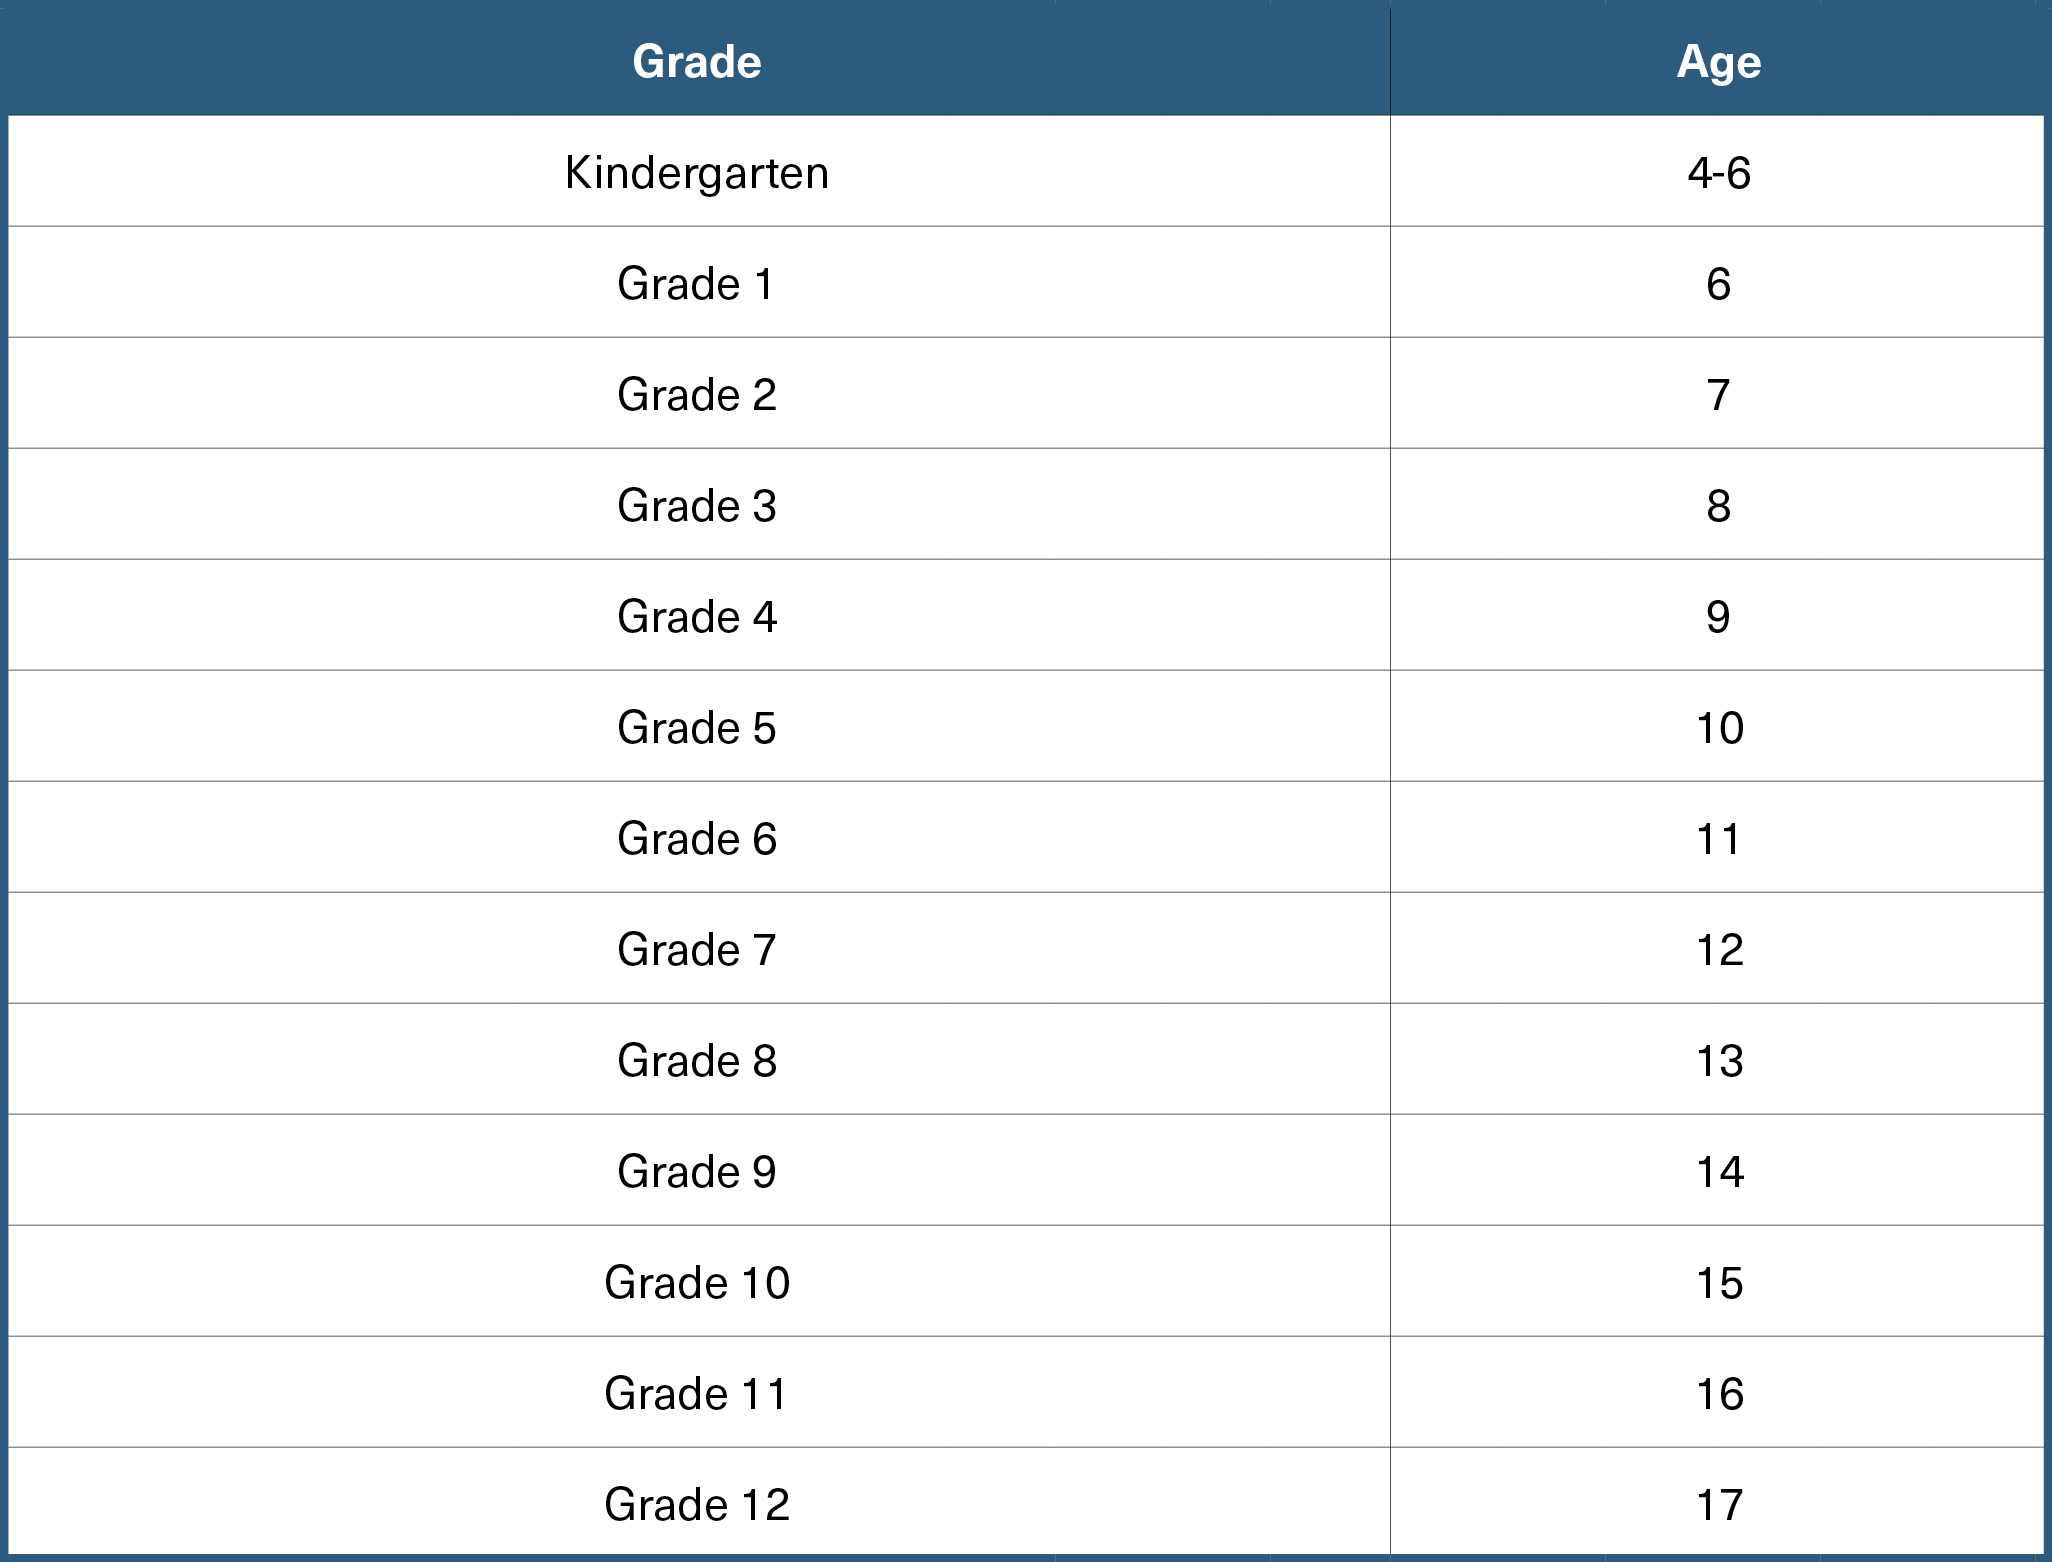 The following table is indicative of average kids' ages for enrollment in specific grades.